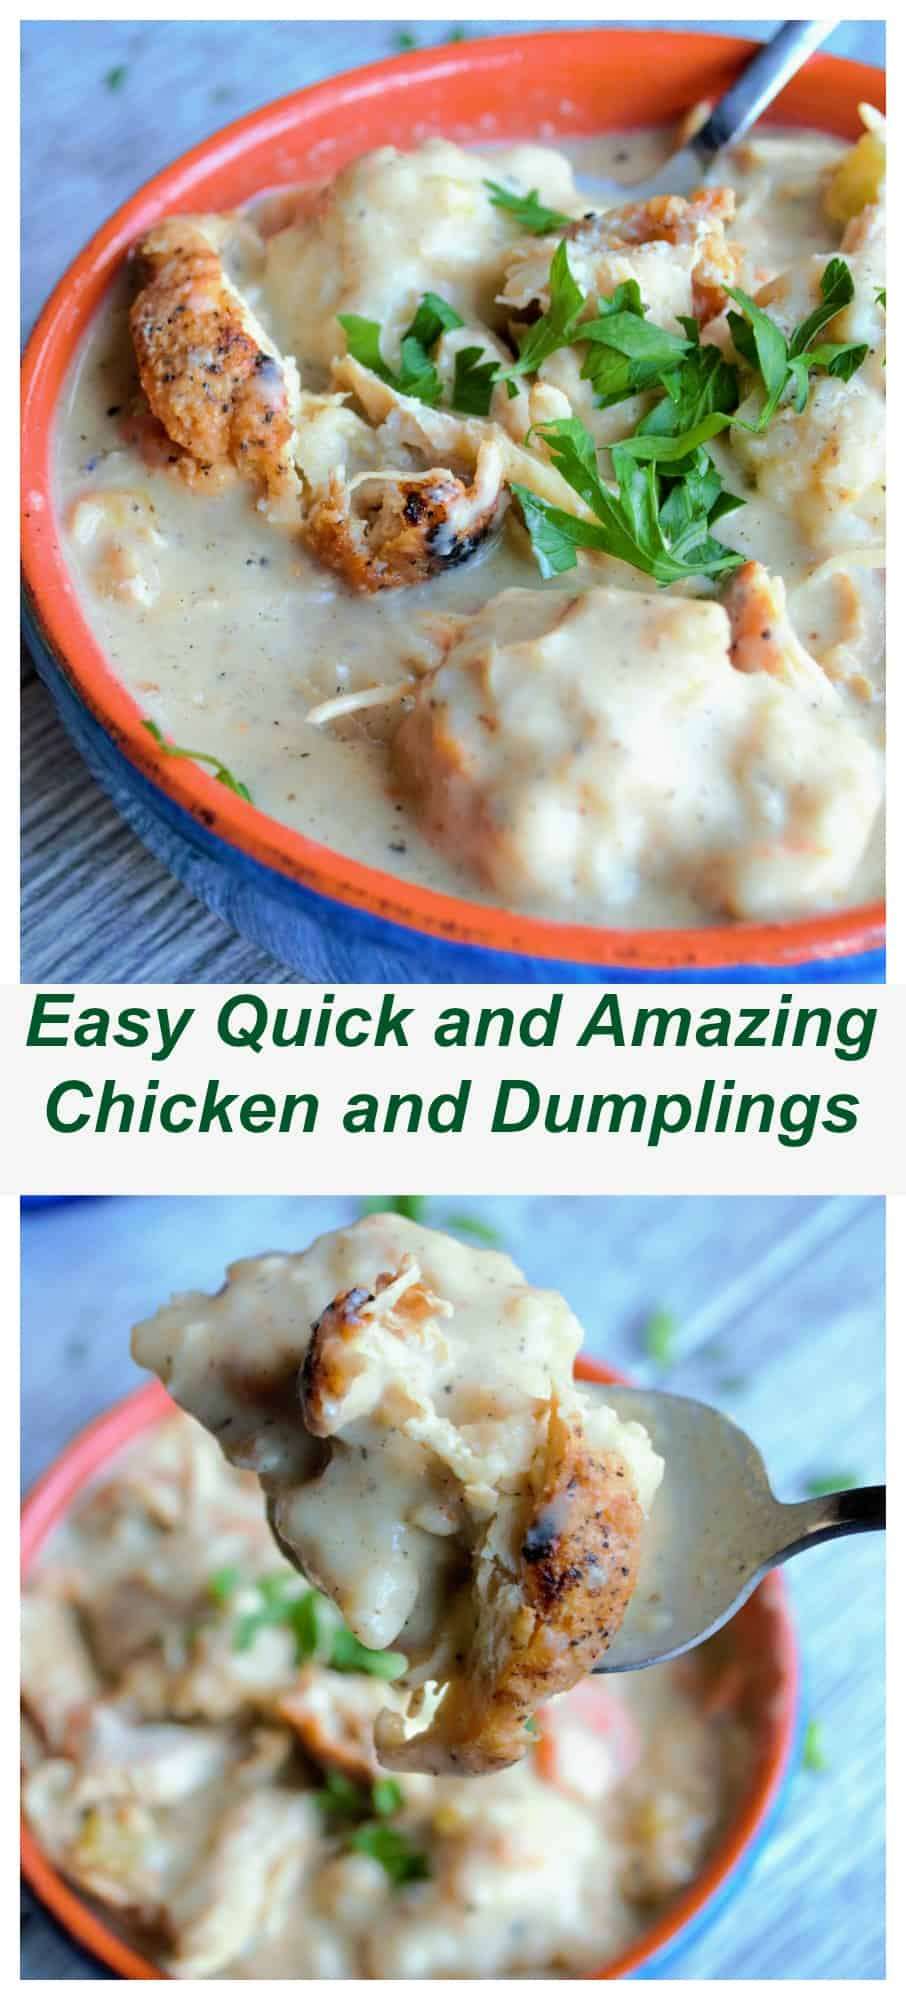 The Best Chicken and Dumplings | The Best Chicken and Dumplings is a hearty blend of roasted chicken and plump dumplings in a perfectly seasoned creamy soup. | Pack Momma | https://www.packmomma.com